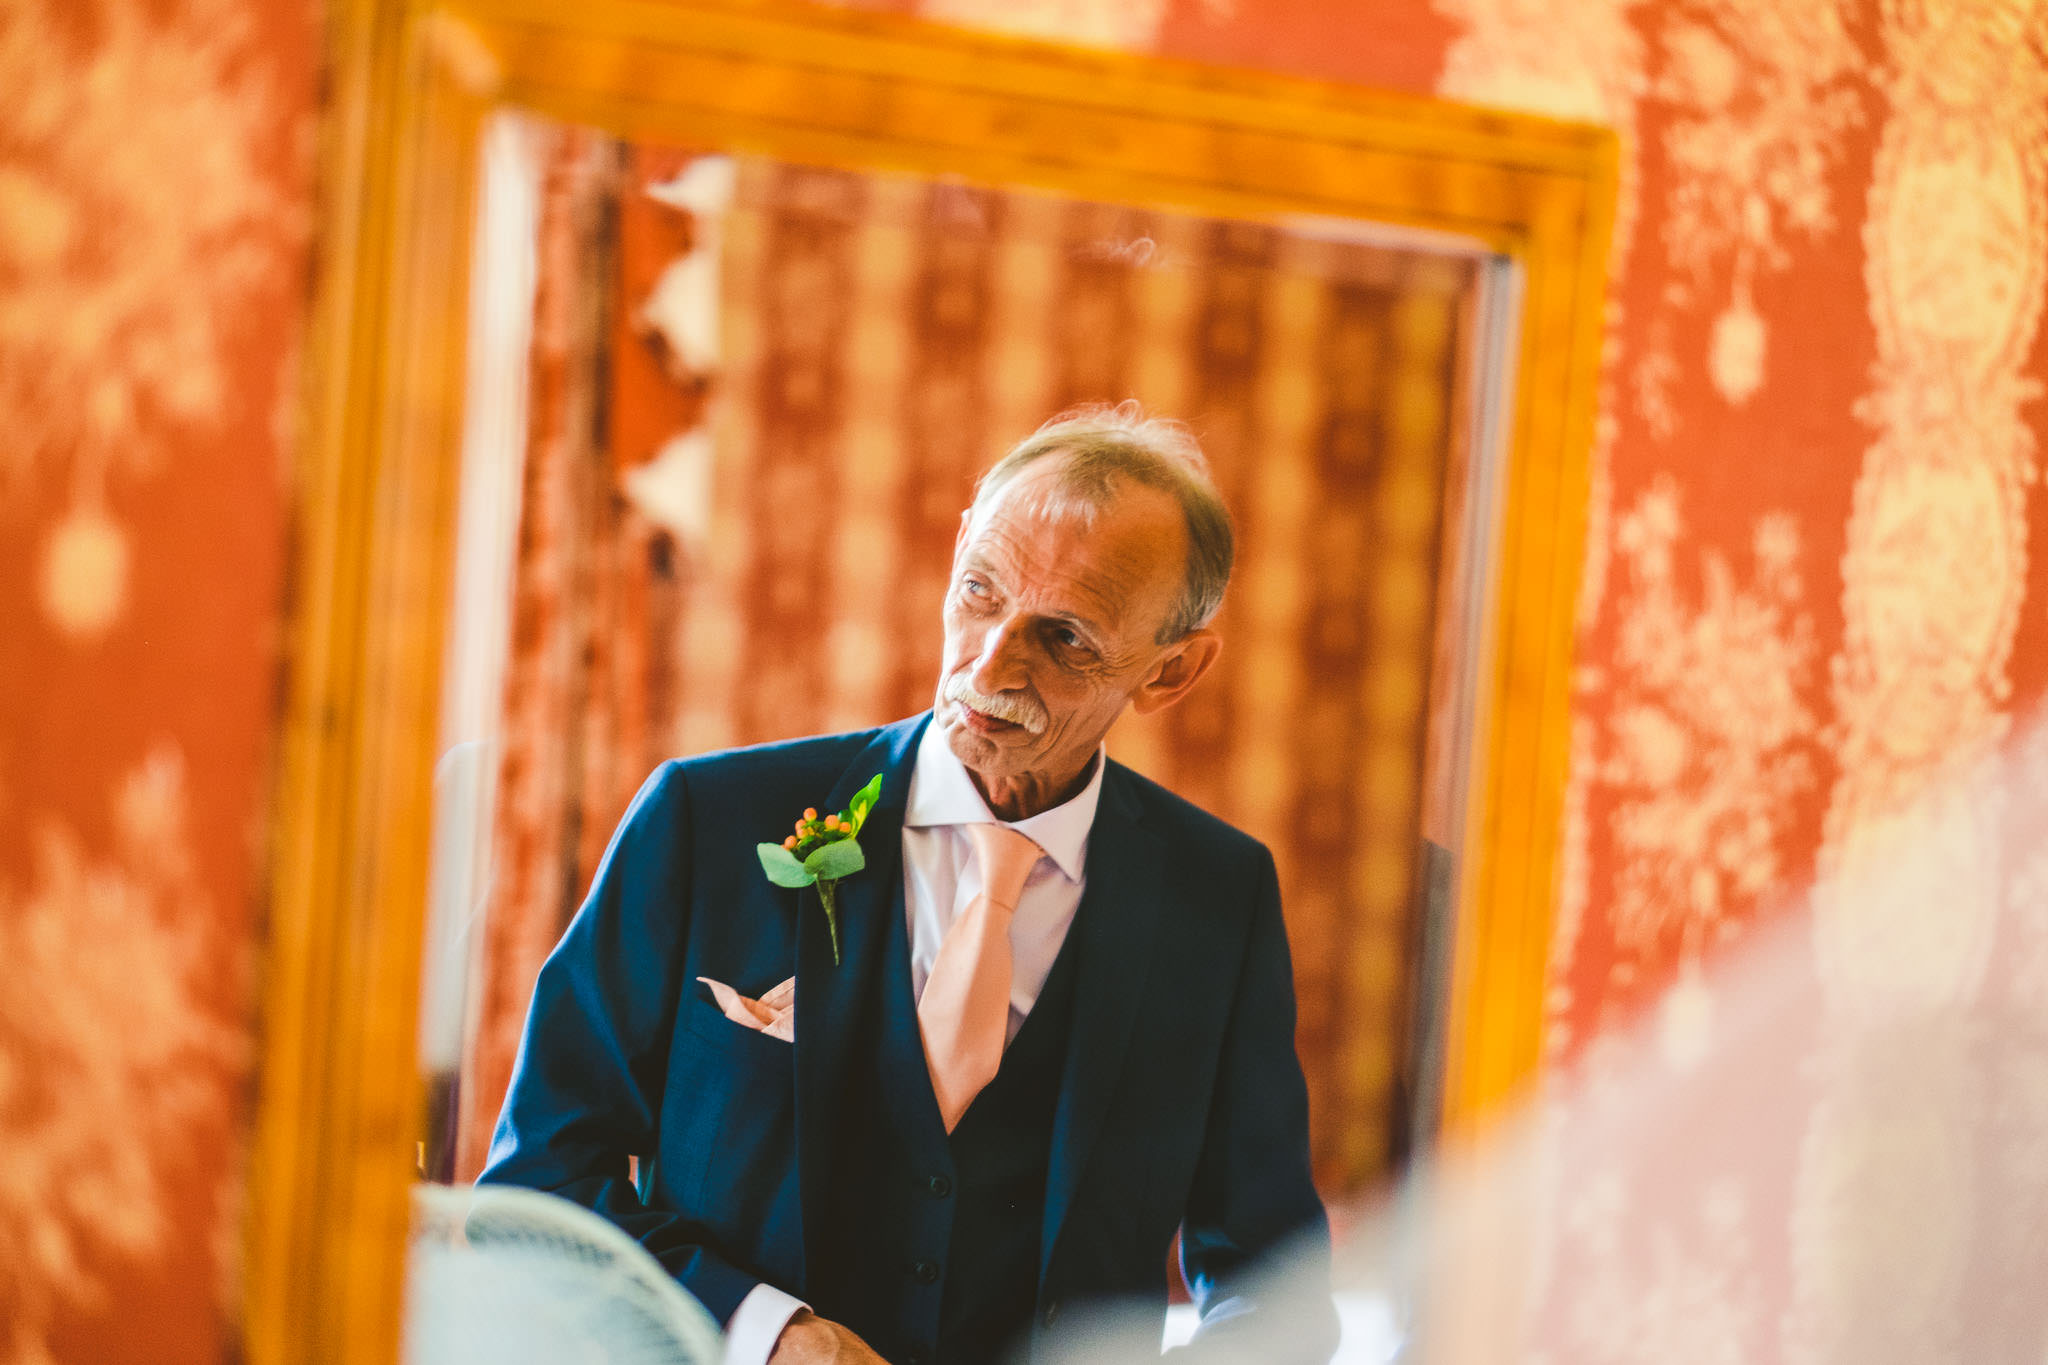 The father of the bride watching shares an emotional moment with his daughter